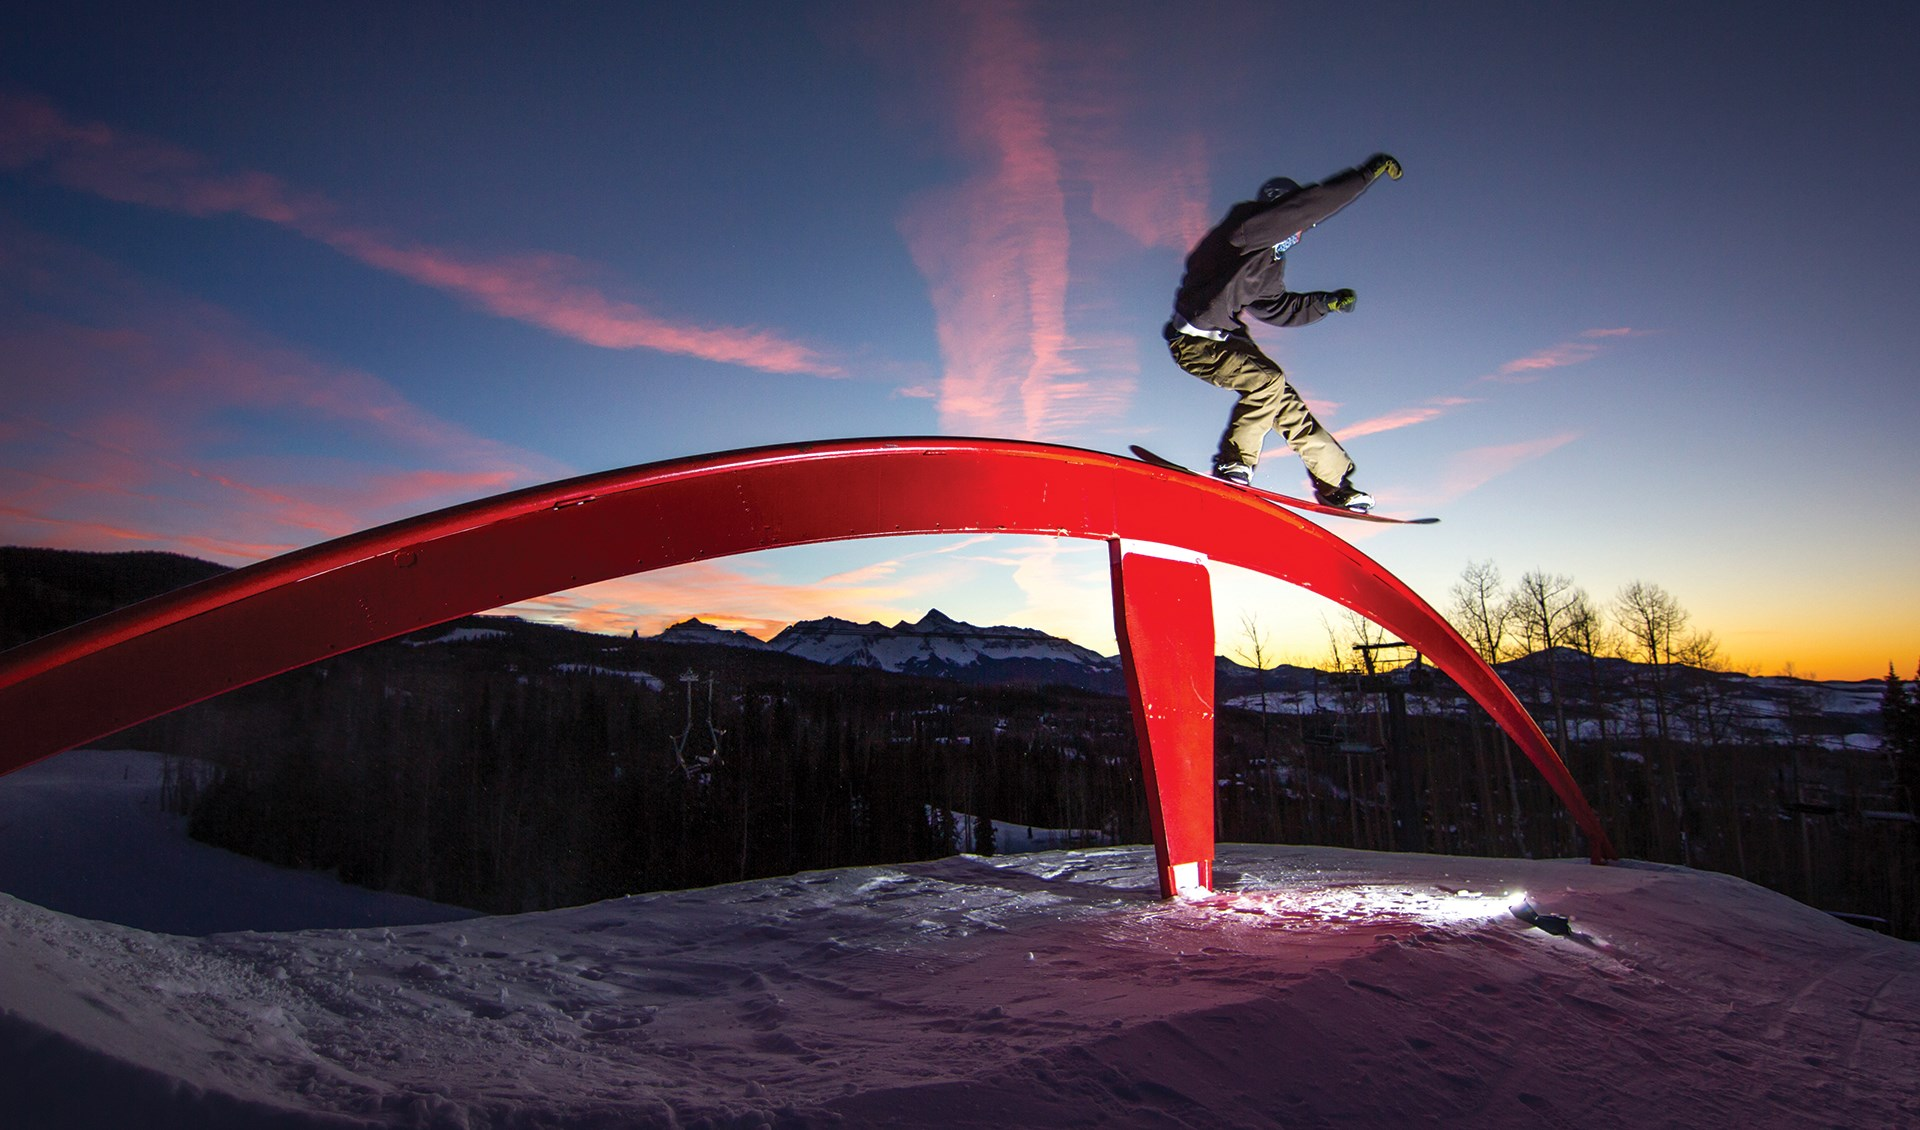 Snowboarder Riding the Rail at Telluride Ski Resort